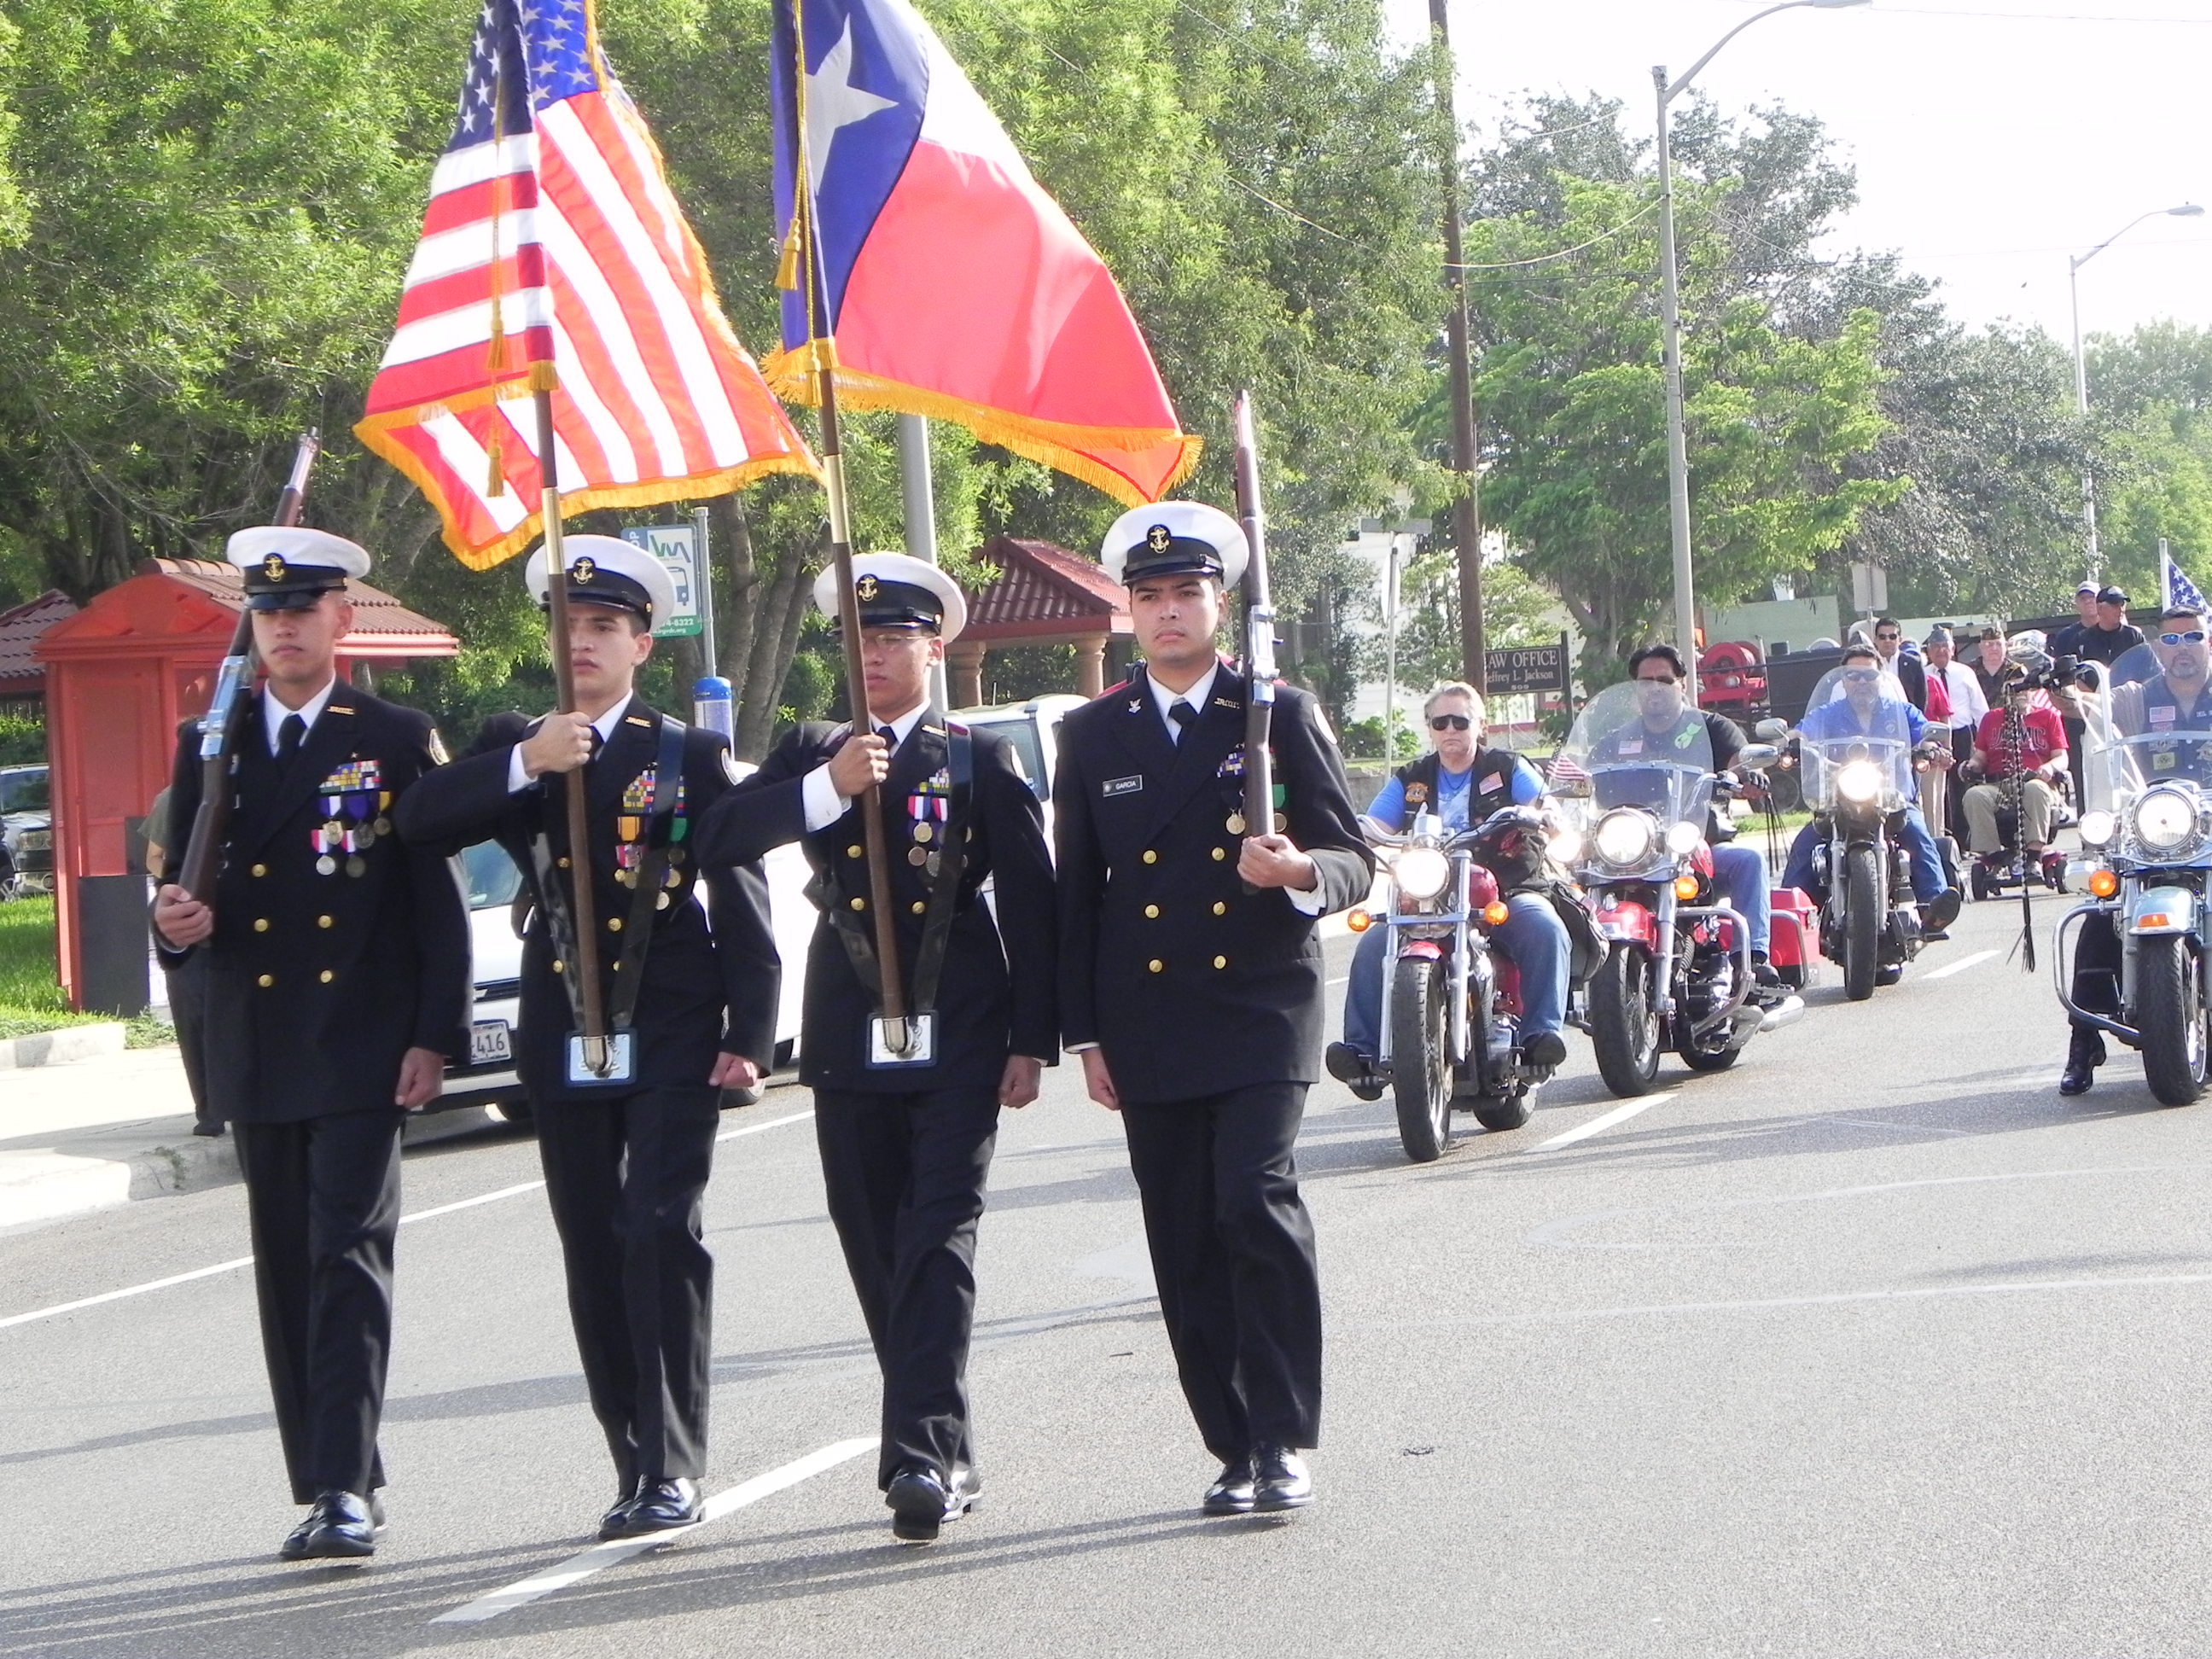 People in uniform participate in a parade